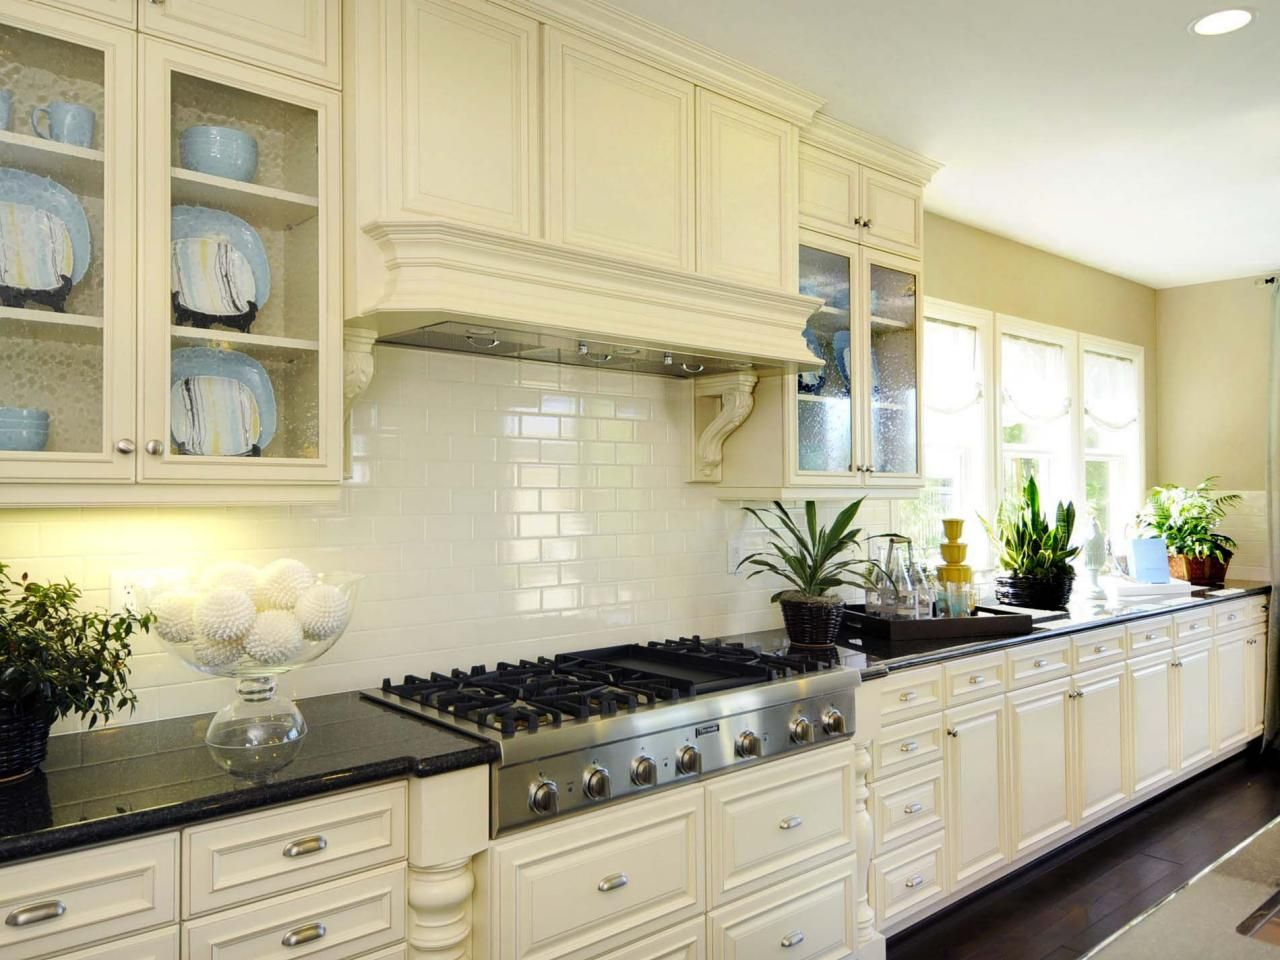 - Picking A Kitchen Backsplash (With Images) Kitchen Backsplash